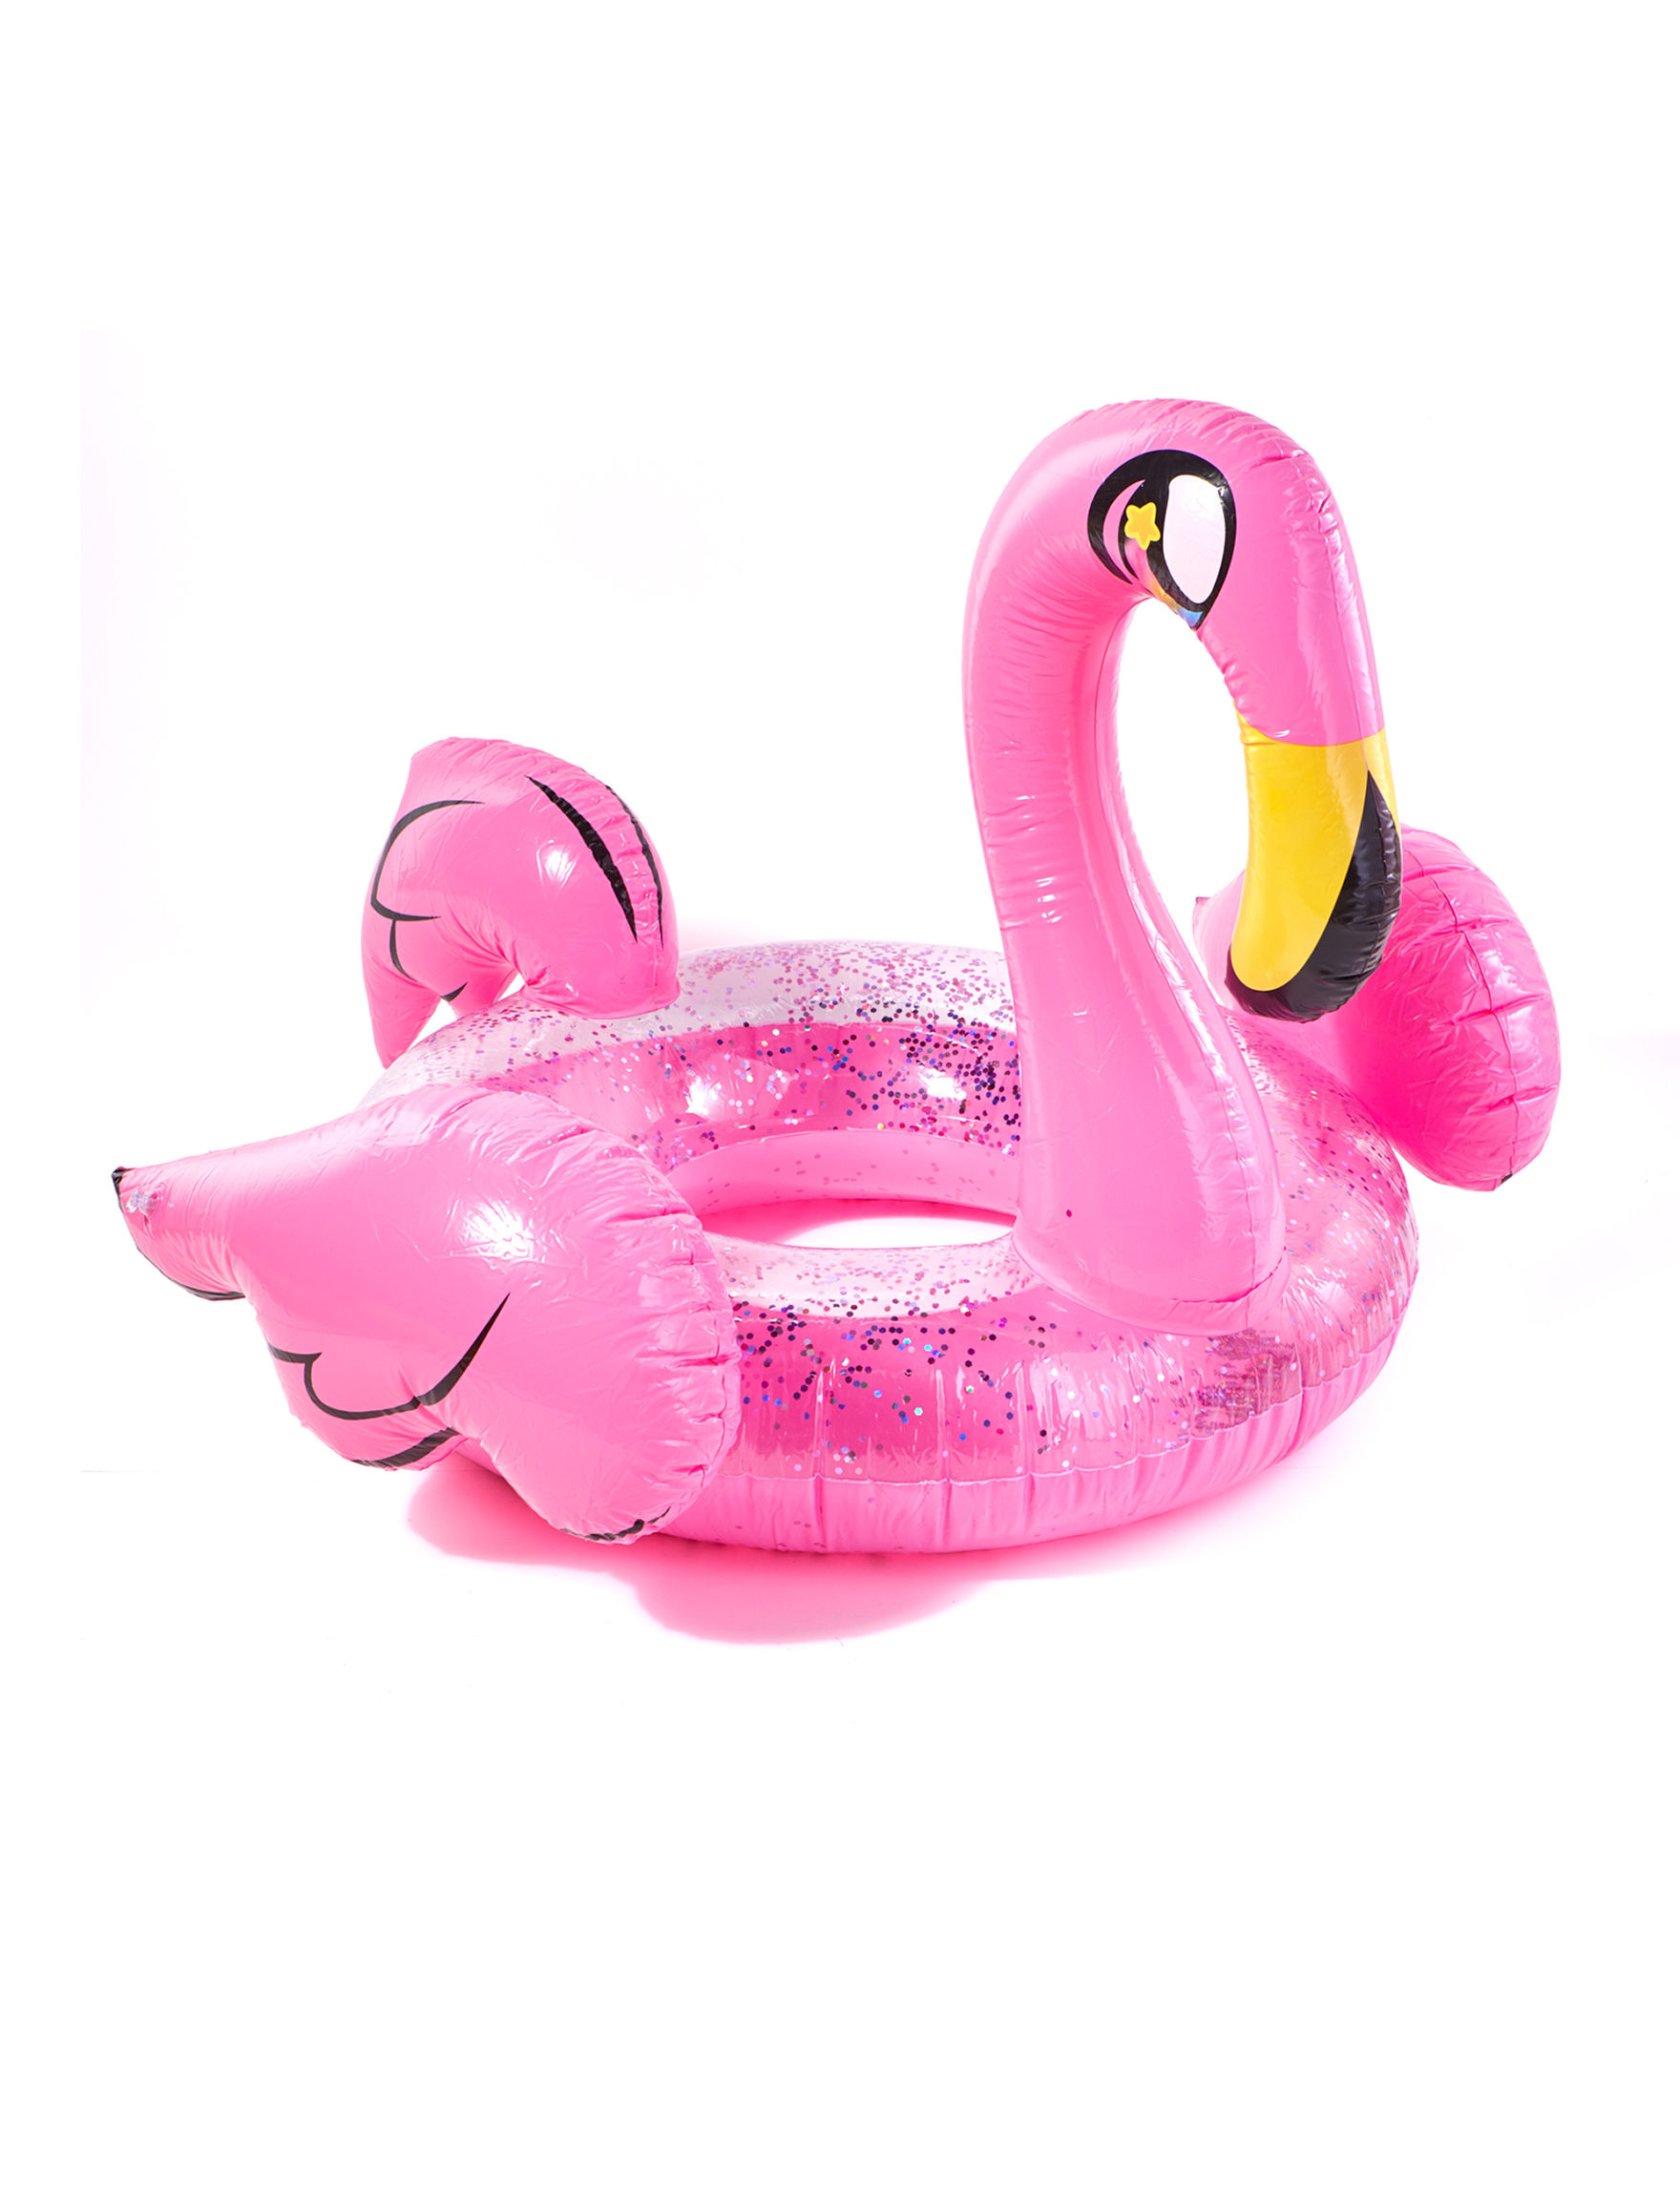 Pool Candy Pink Multi Pool Floats Camping & Outdoor Gear